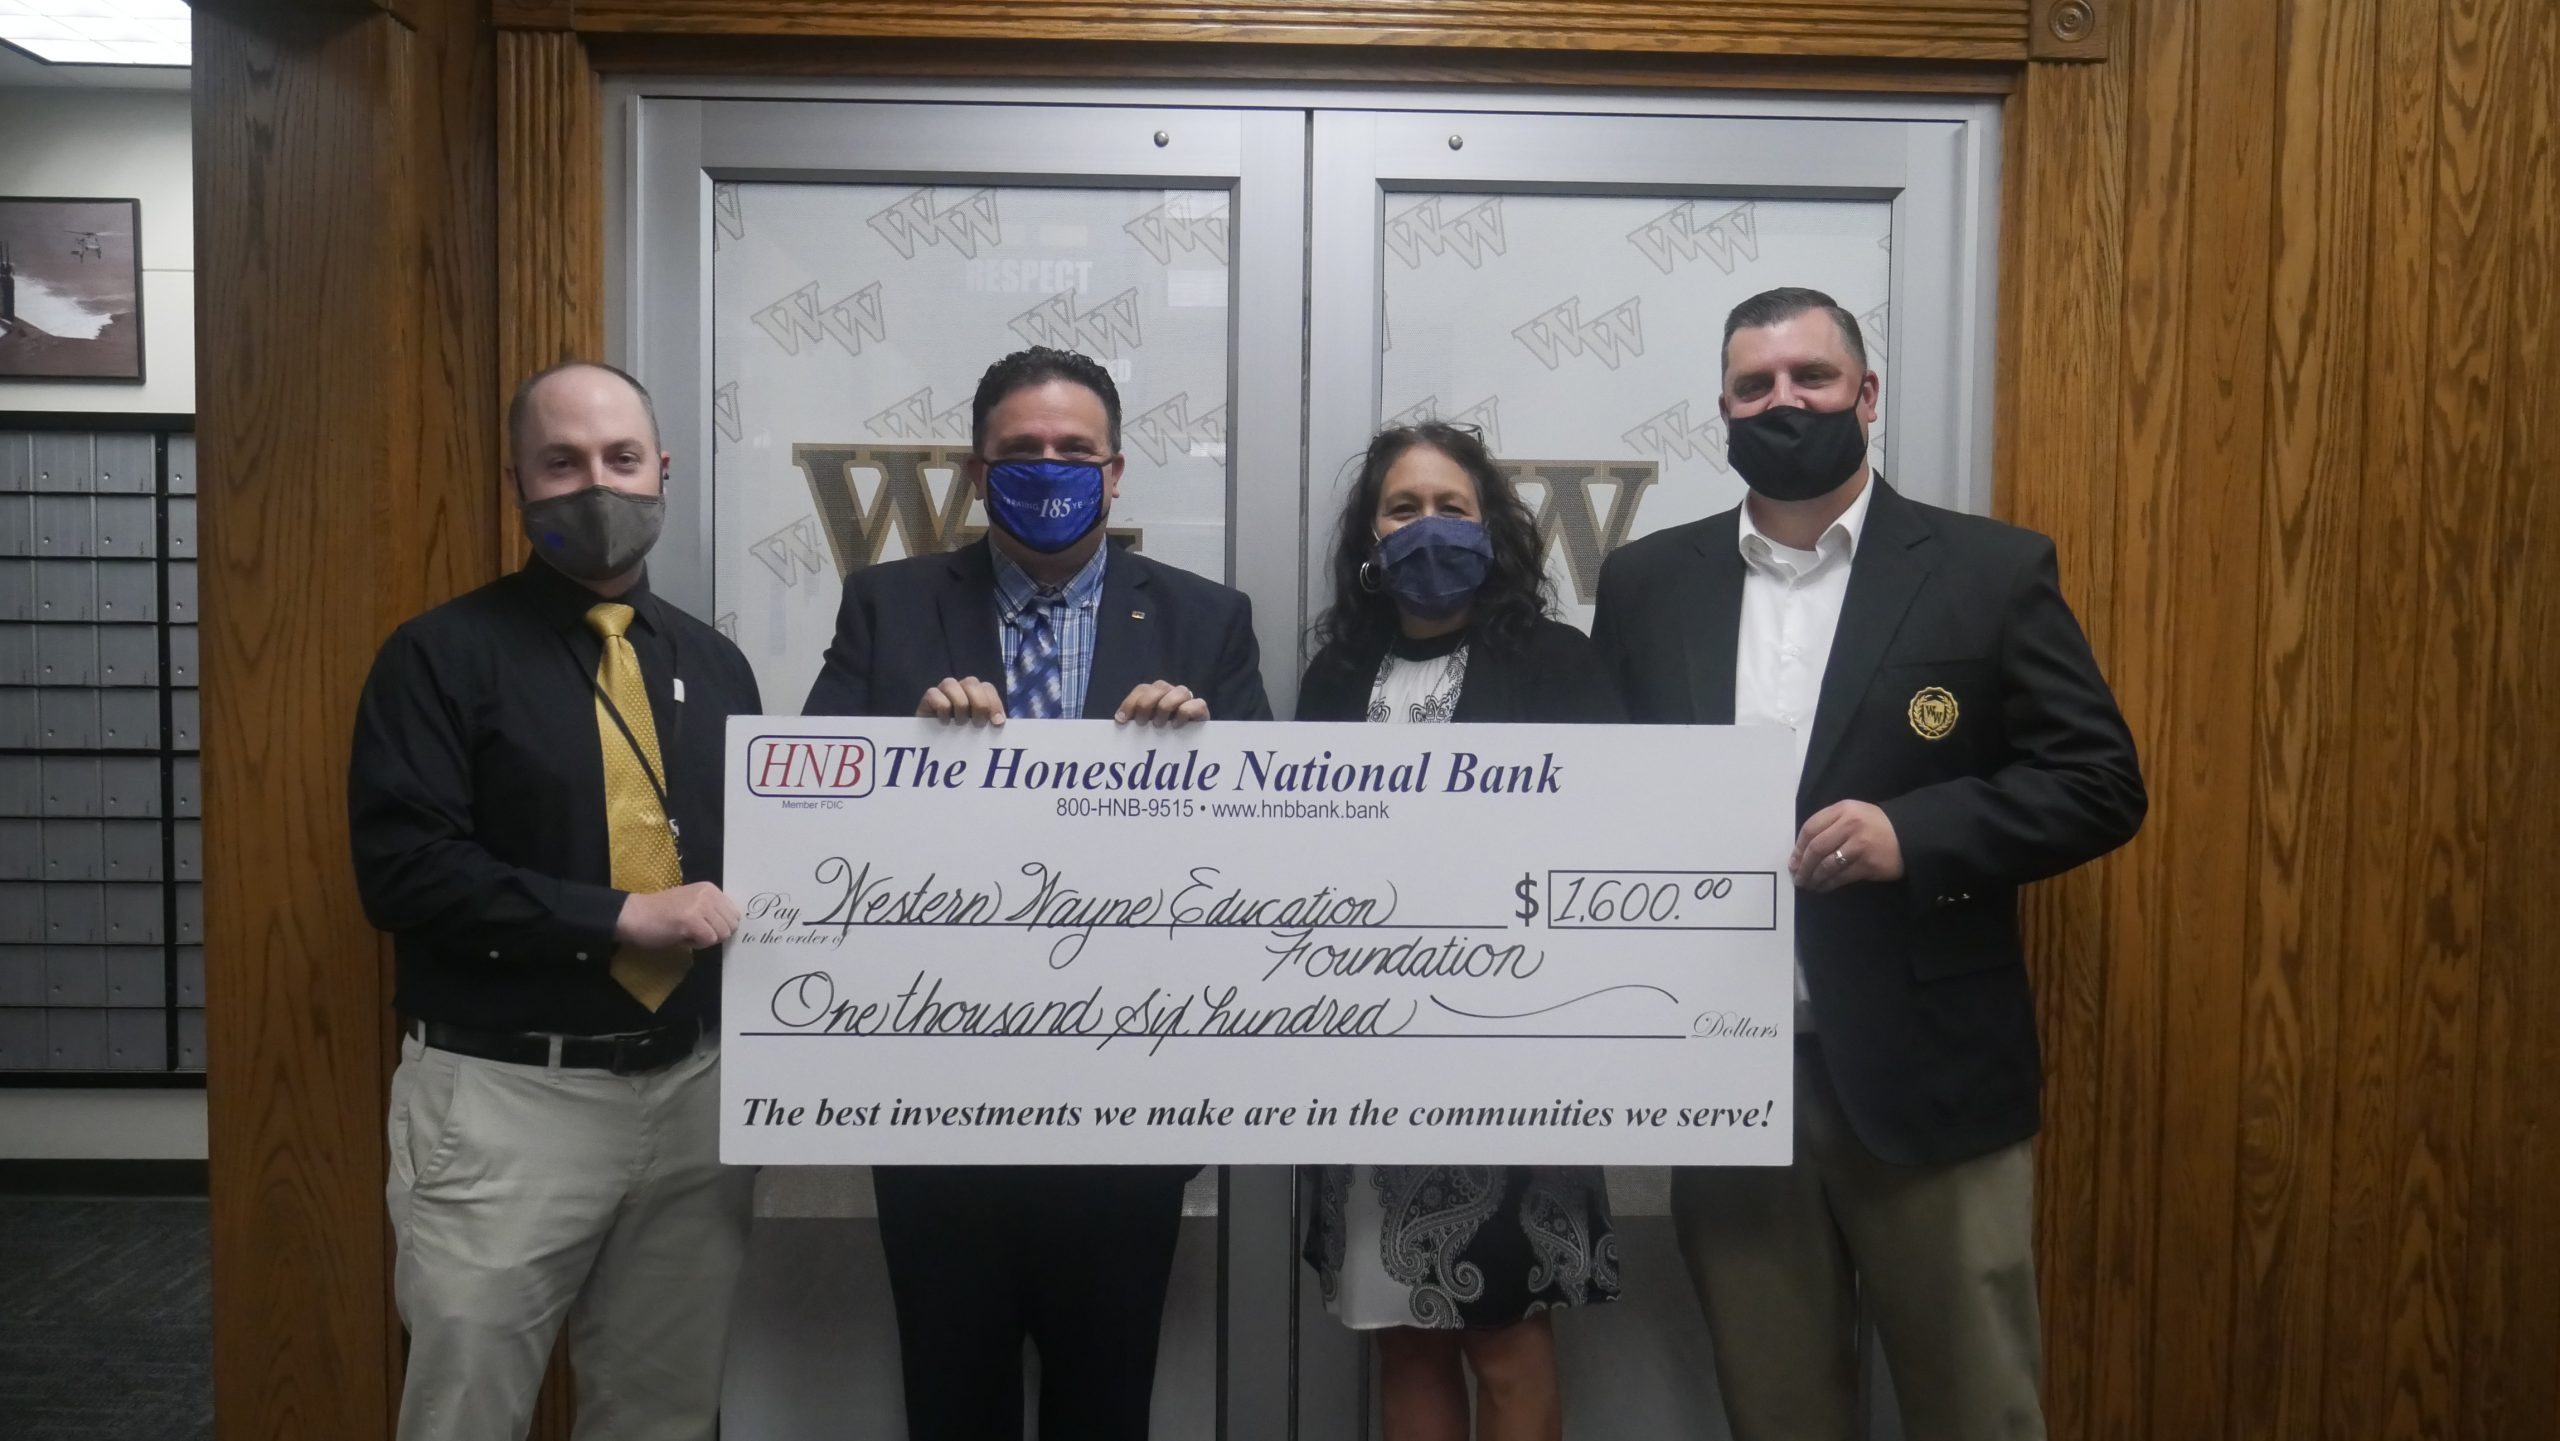 Western Wayne Education Association Receives Donation from The Honesdale National Bank